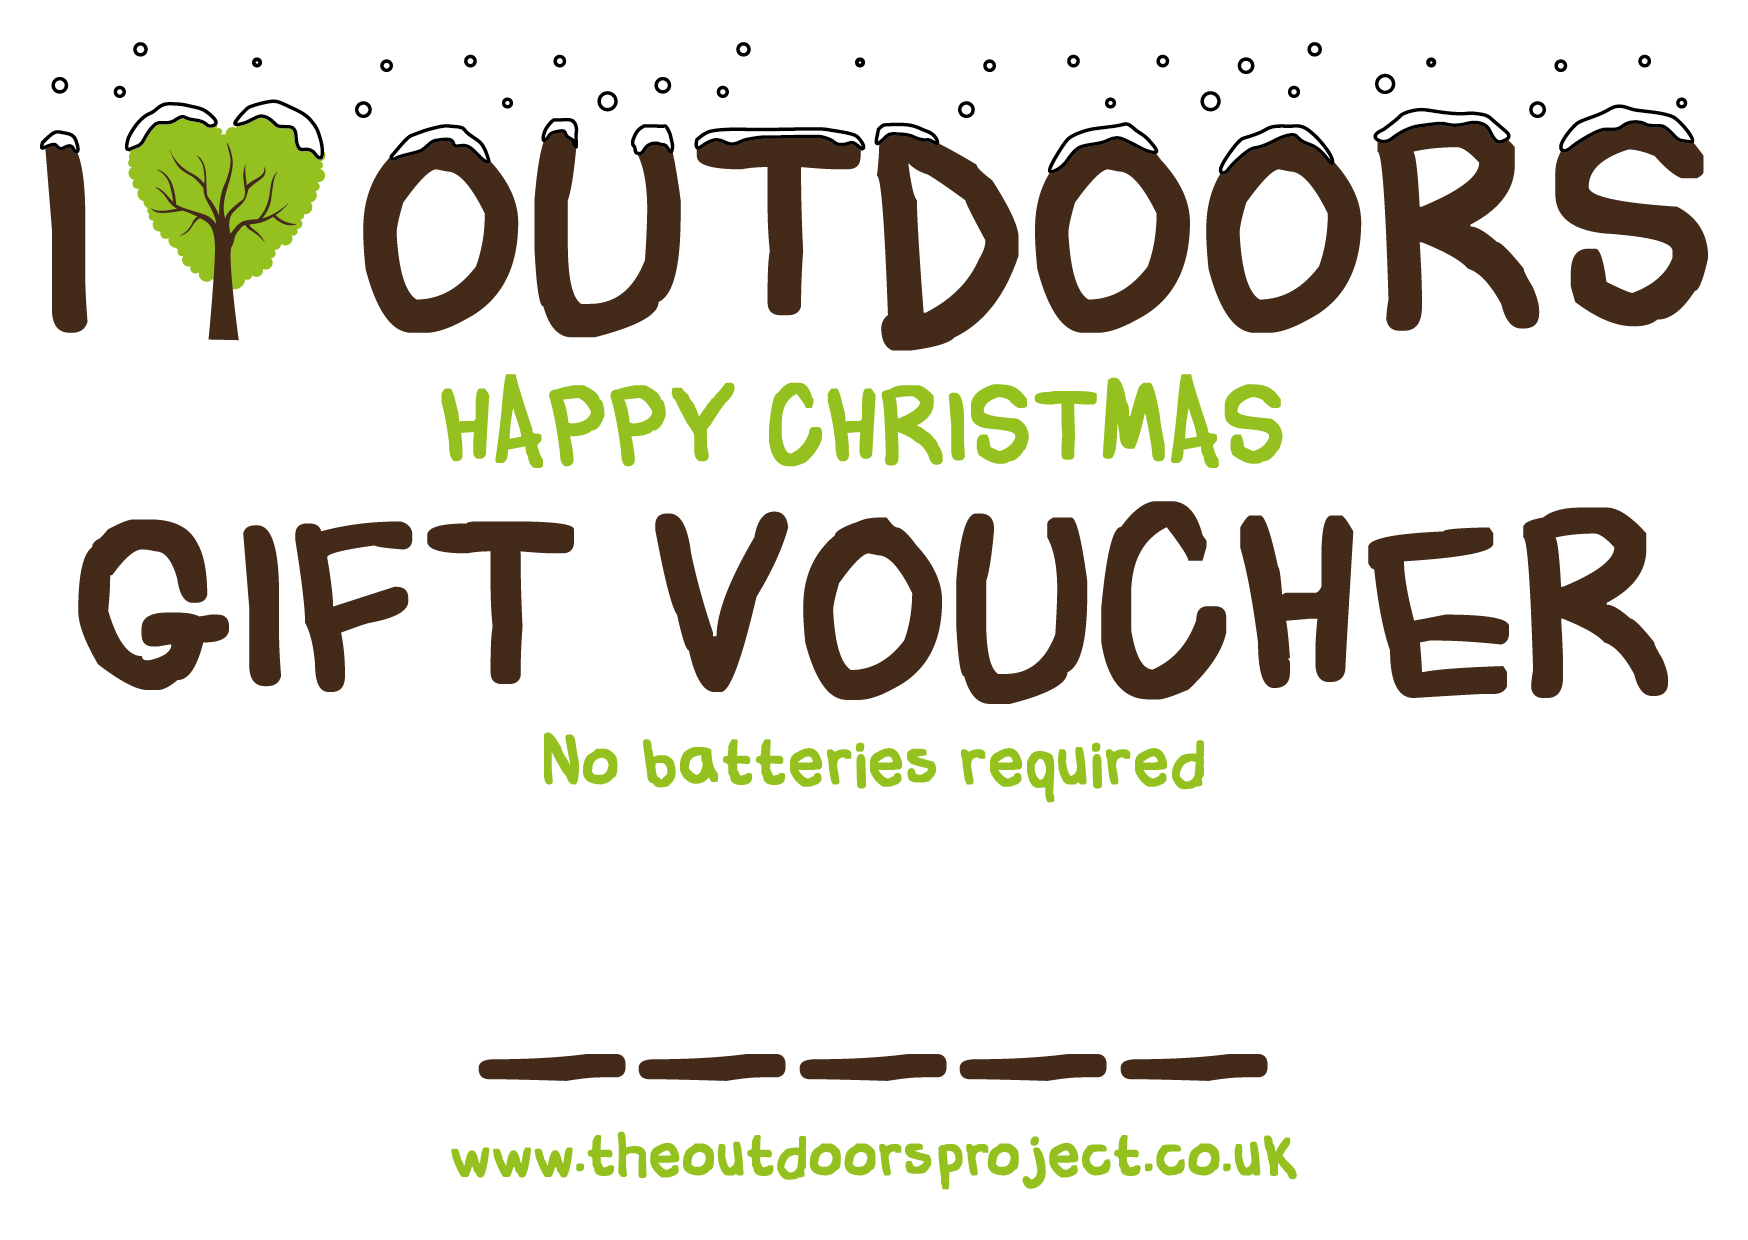 XMAS GIFT VOUCHER  - NO BATTERIES REQUIRED